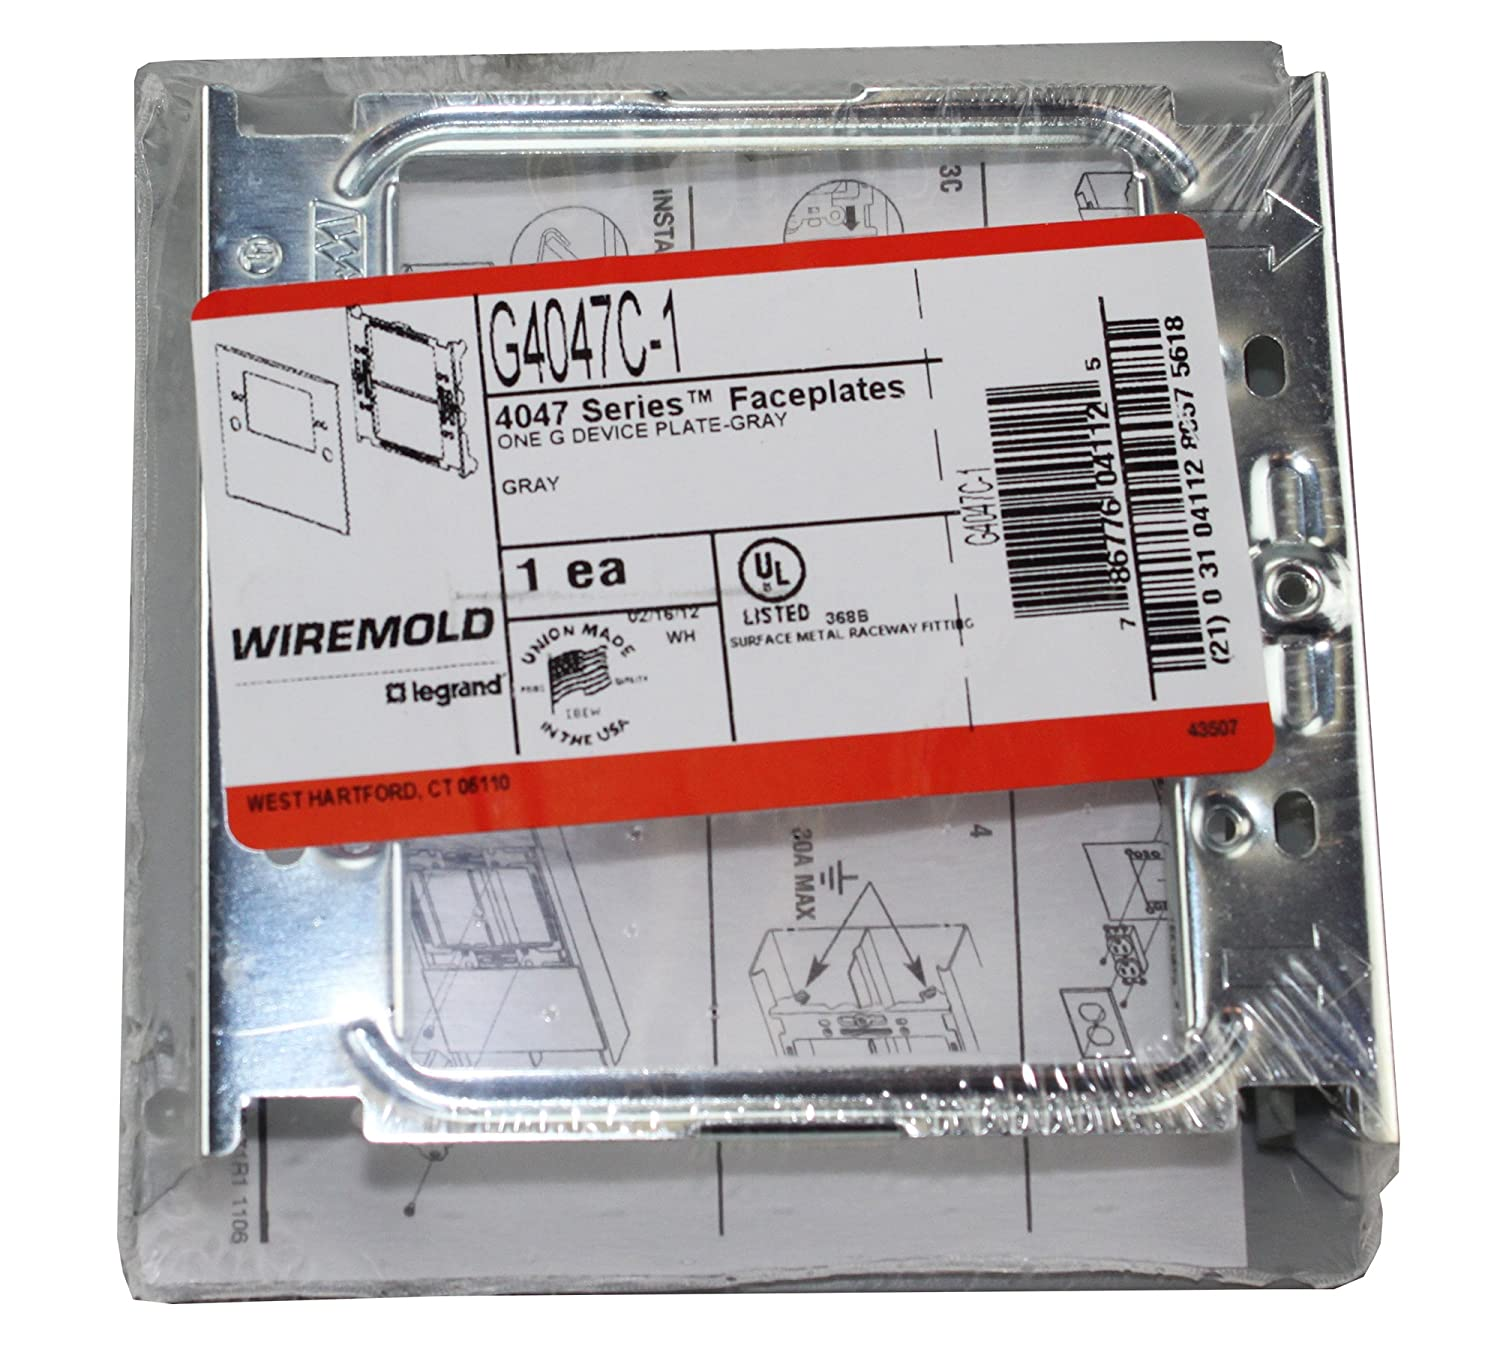 Amazon.com : Walker Wiremold G4047C-1 2 Gang Gray Cover Plate 4000 ...